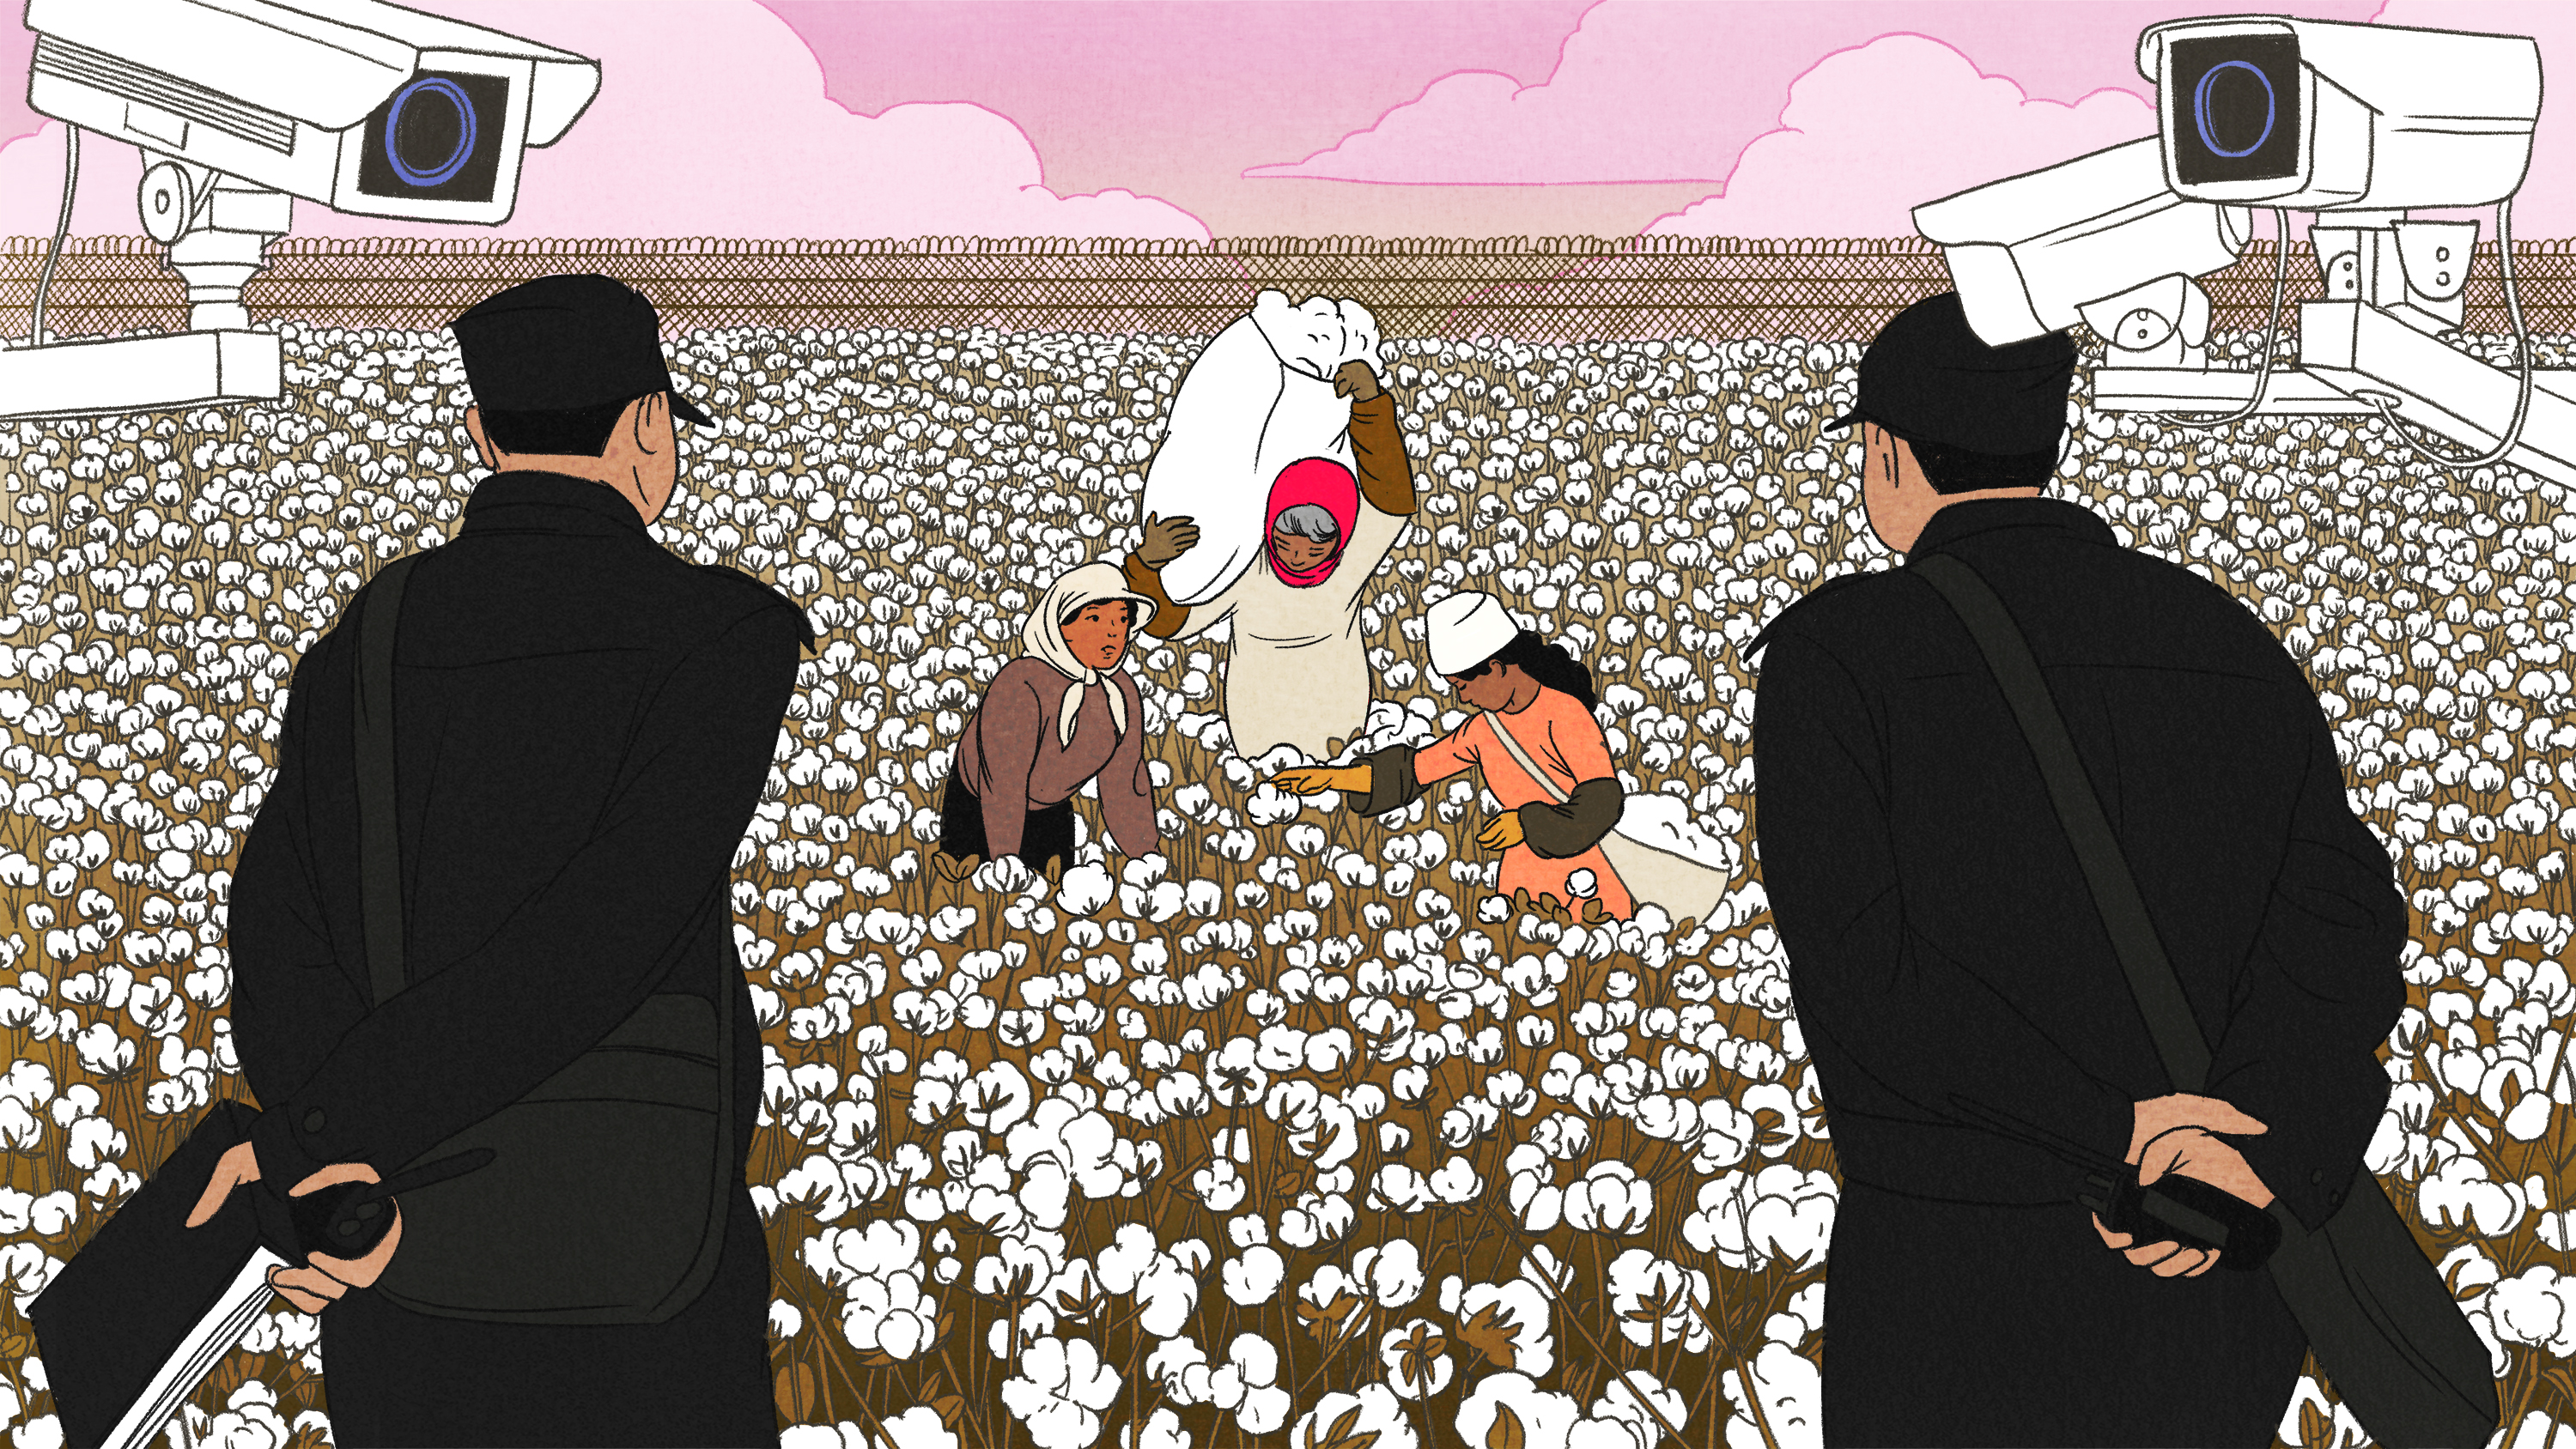 Women picking cotton surrounded by guards and CCTV cameras.